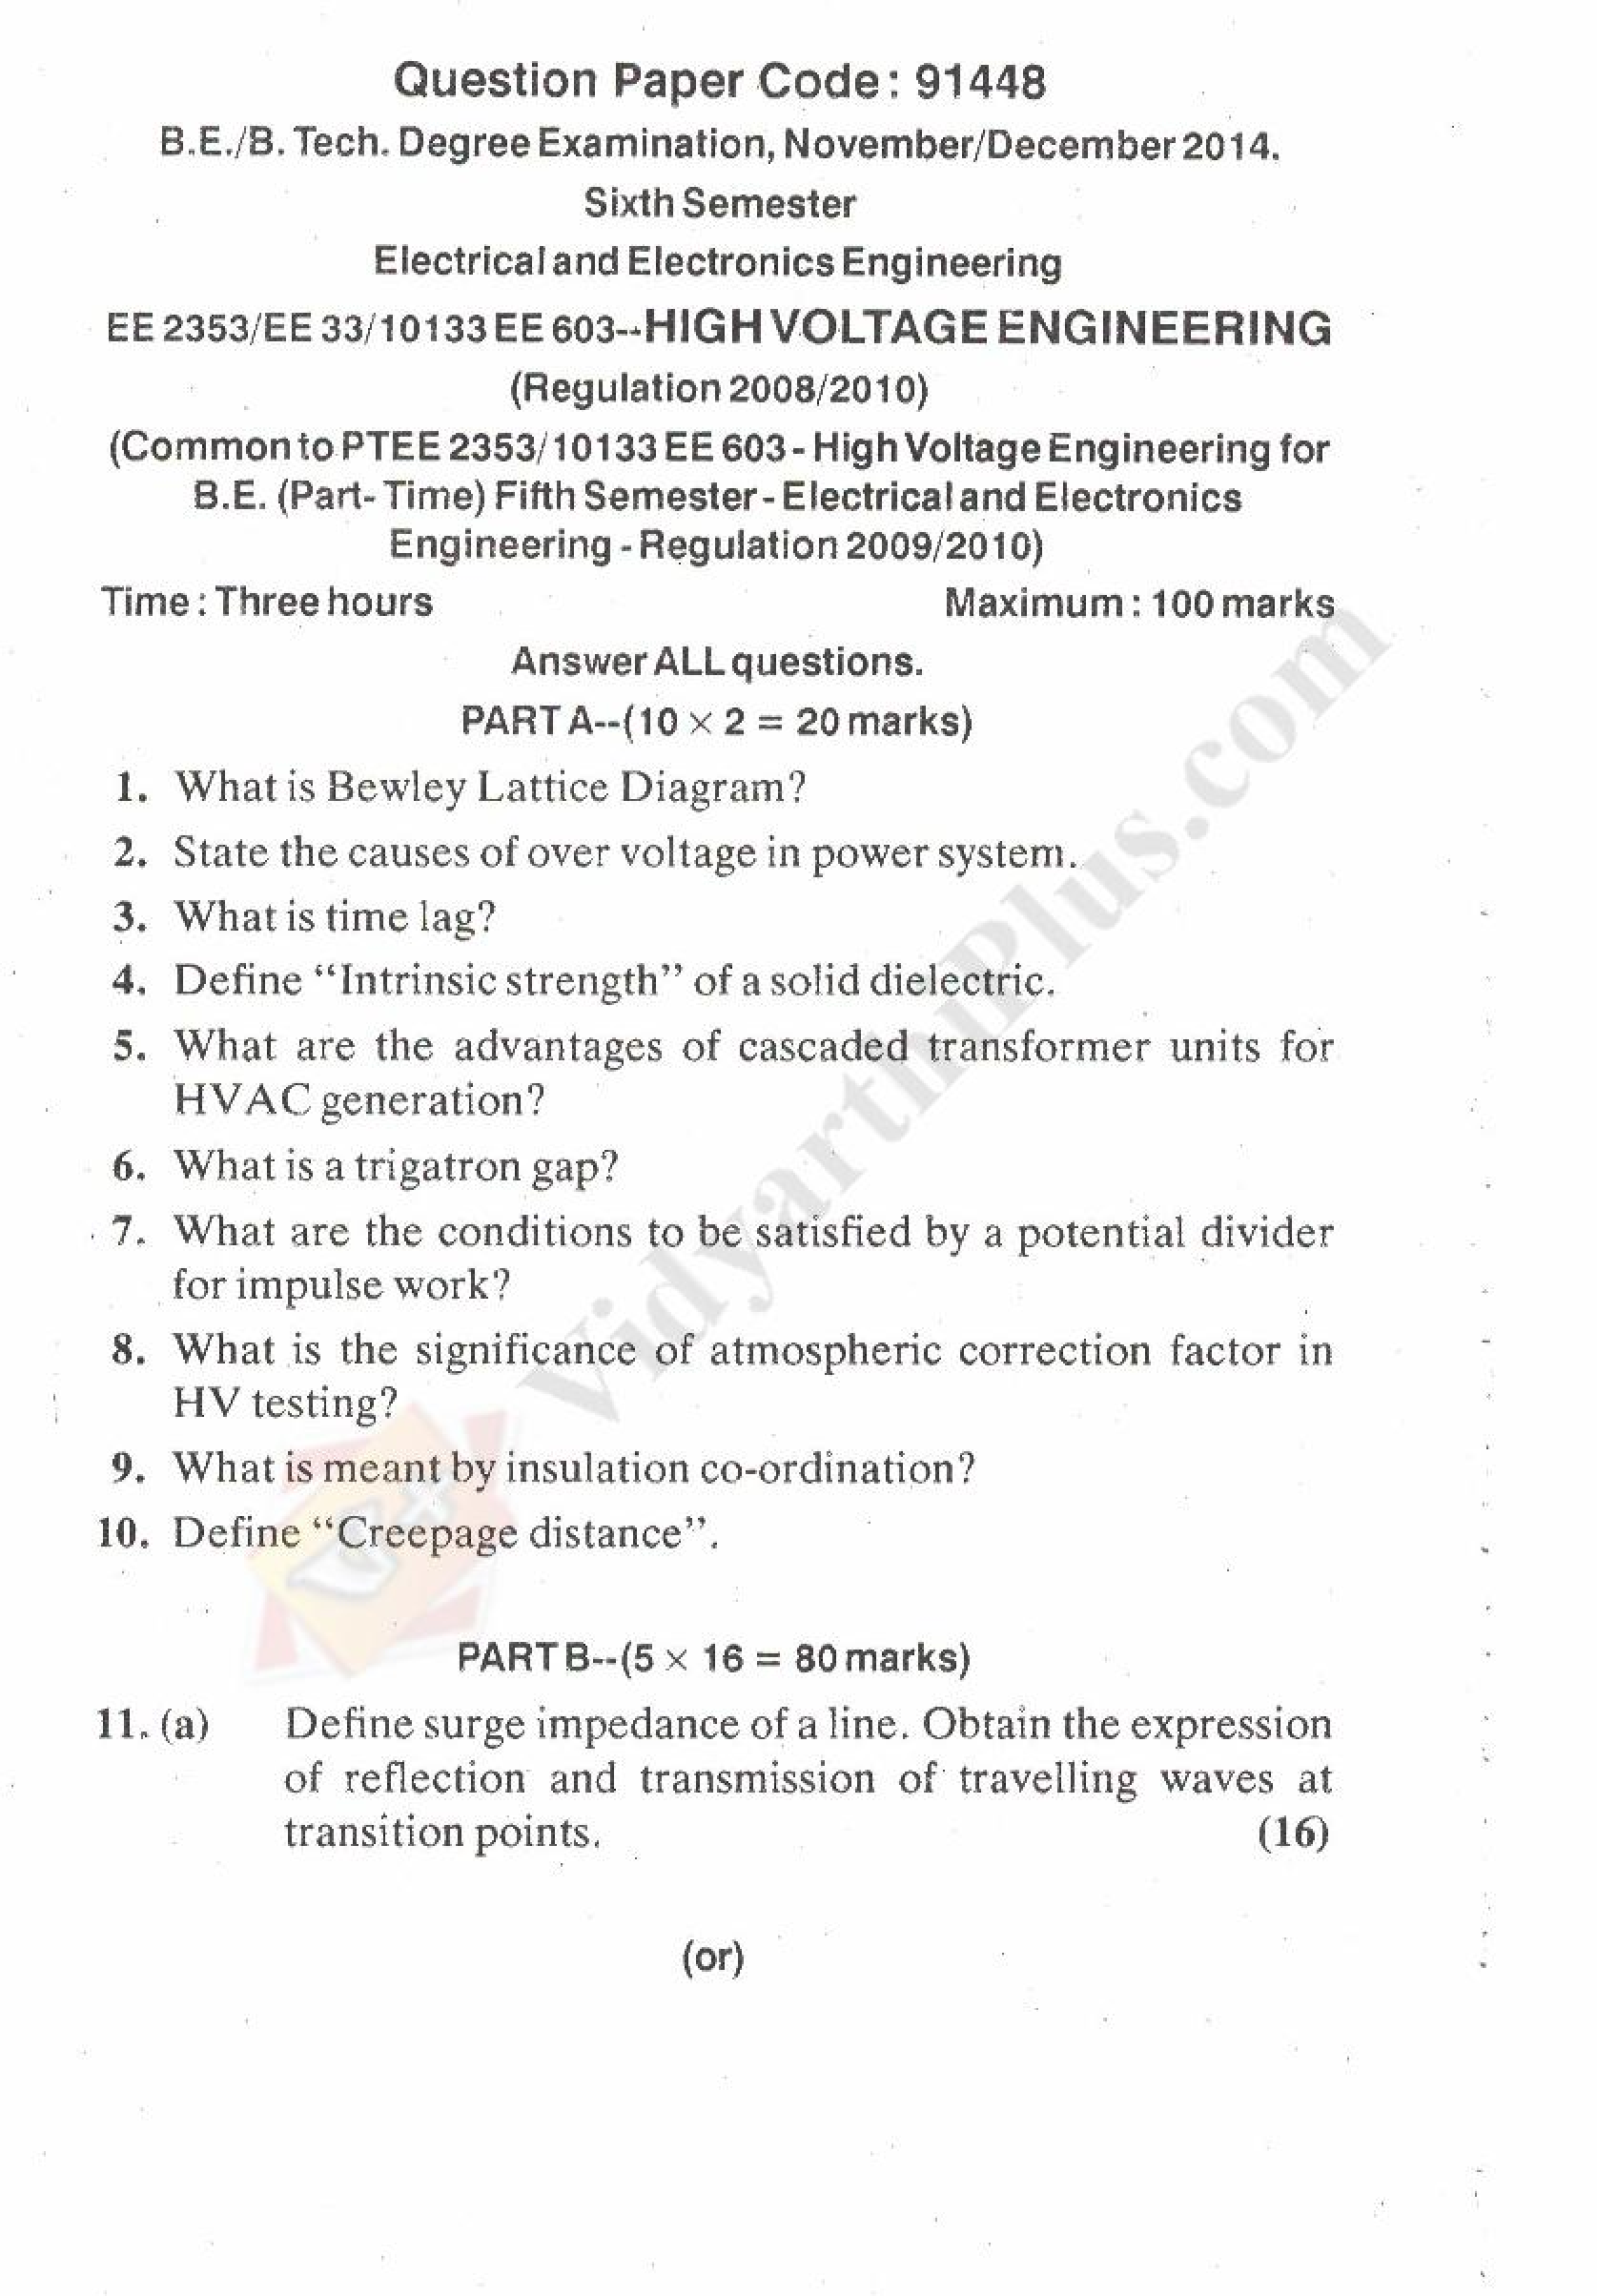 High Voltage Engineering Solved Question Papers - 2015 Edition